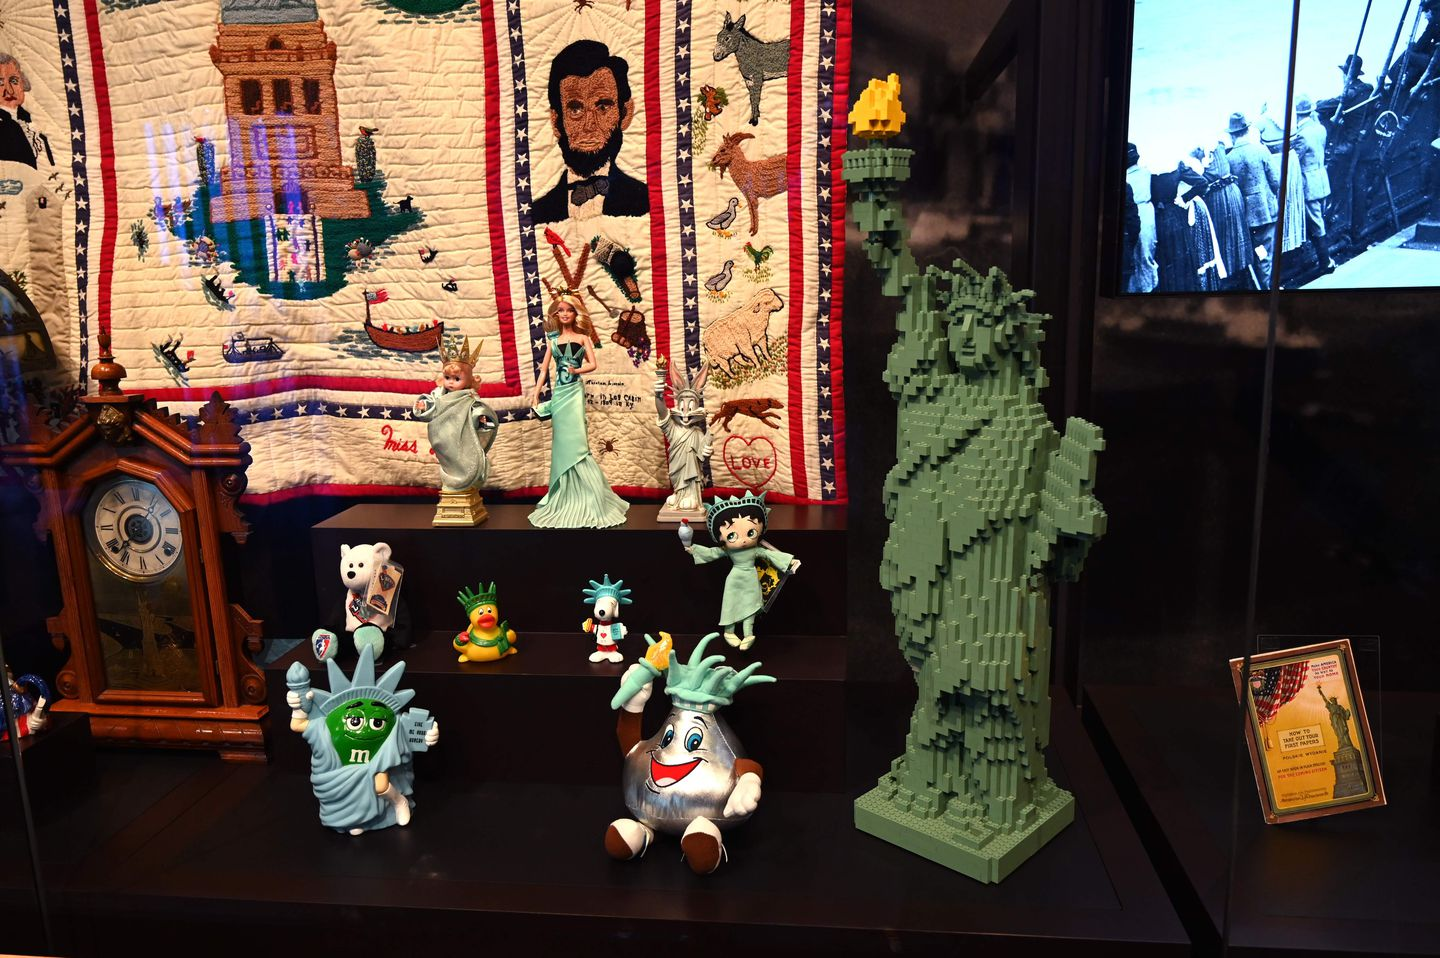 Statue of Liberty toys are displayed at the new Statue of Liberty Museum.